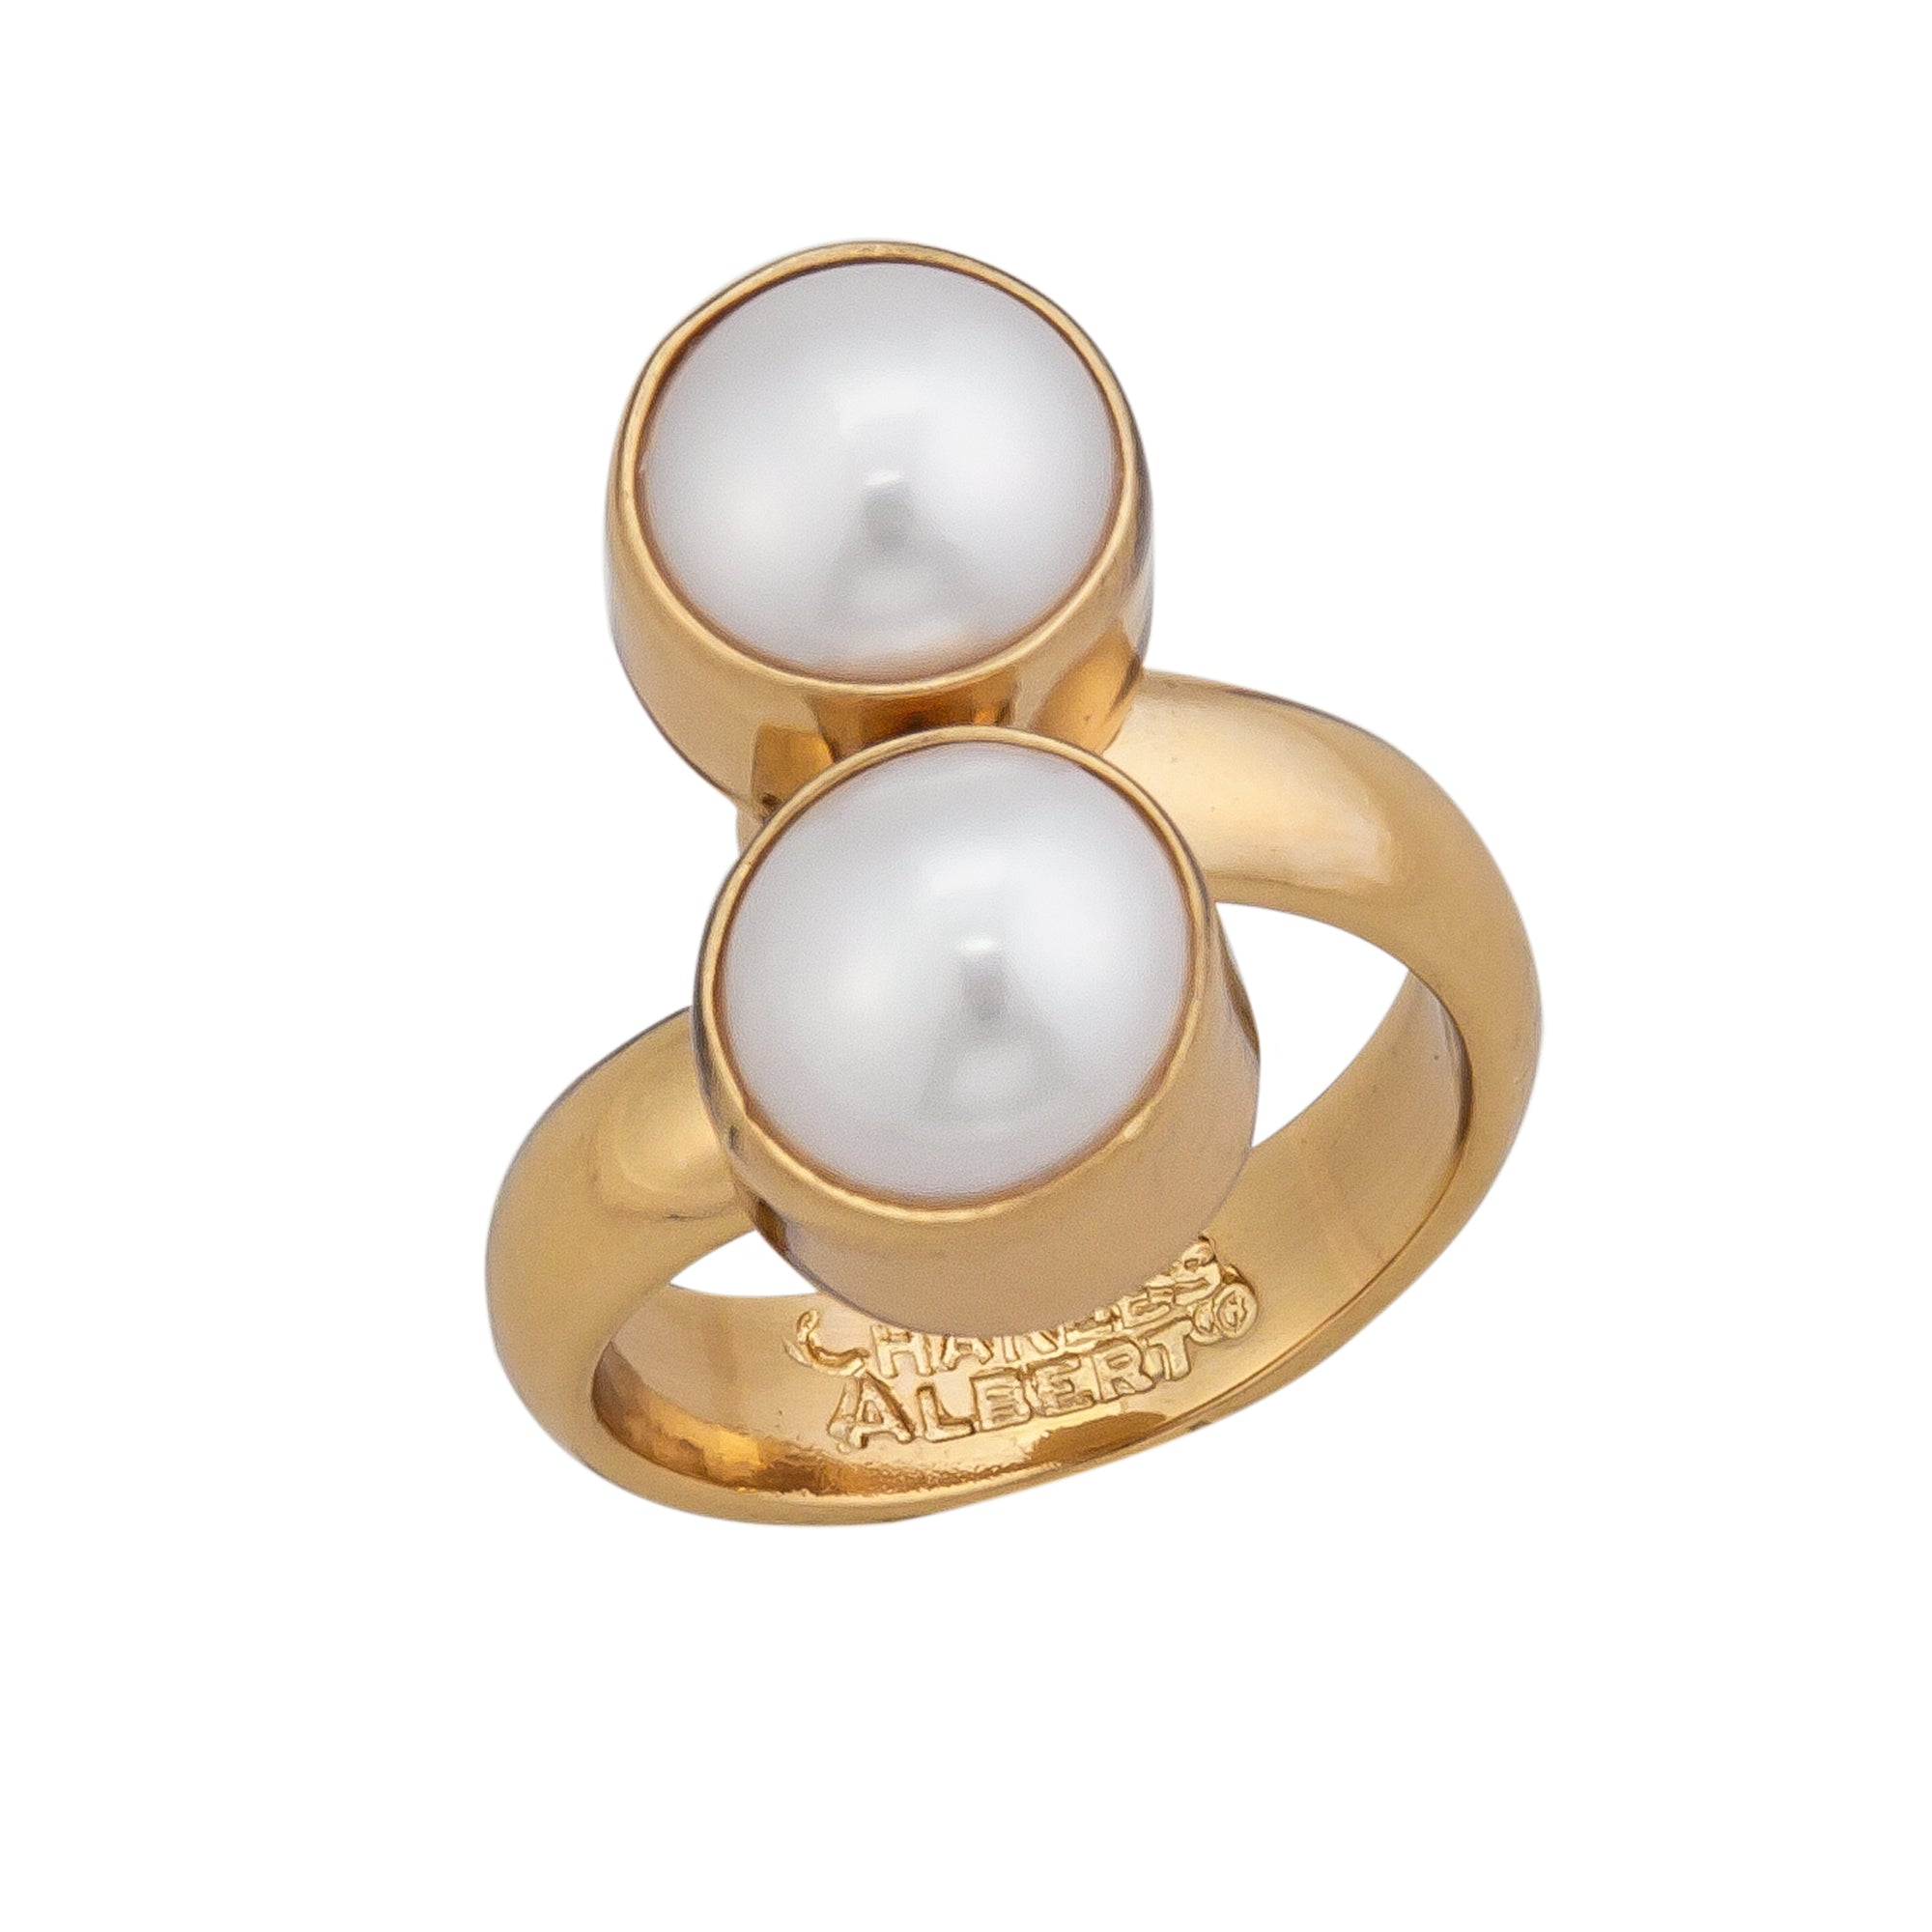 Alchemia Pearl Bypass Adjustable Ring | Charles Albert Jewelry